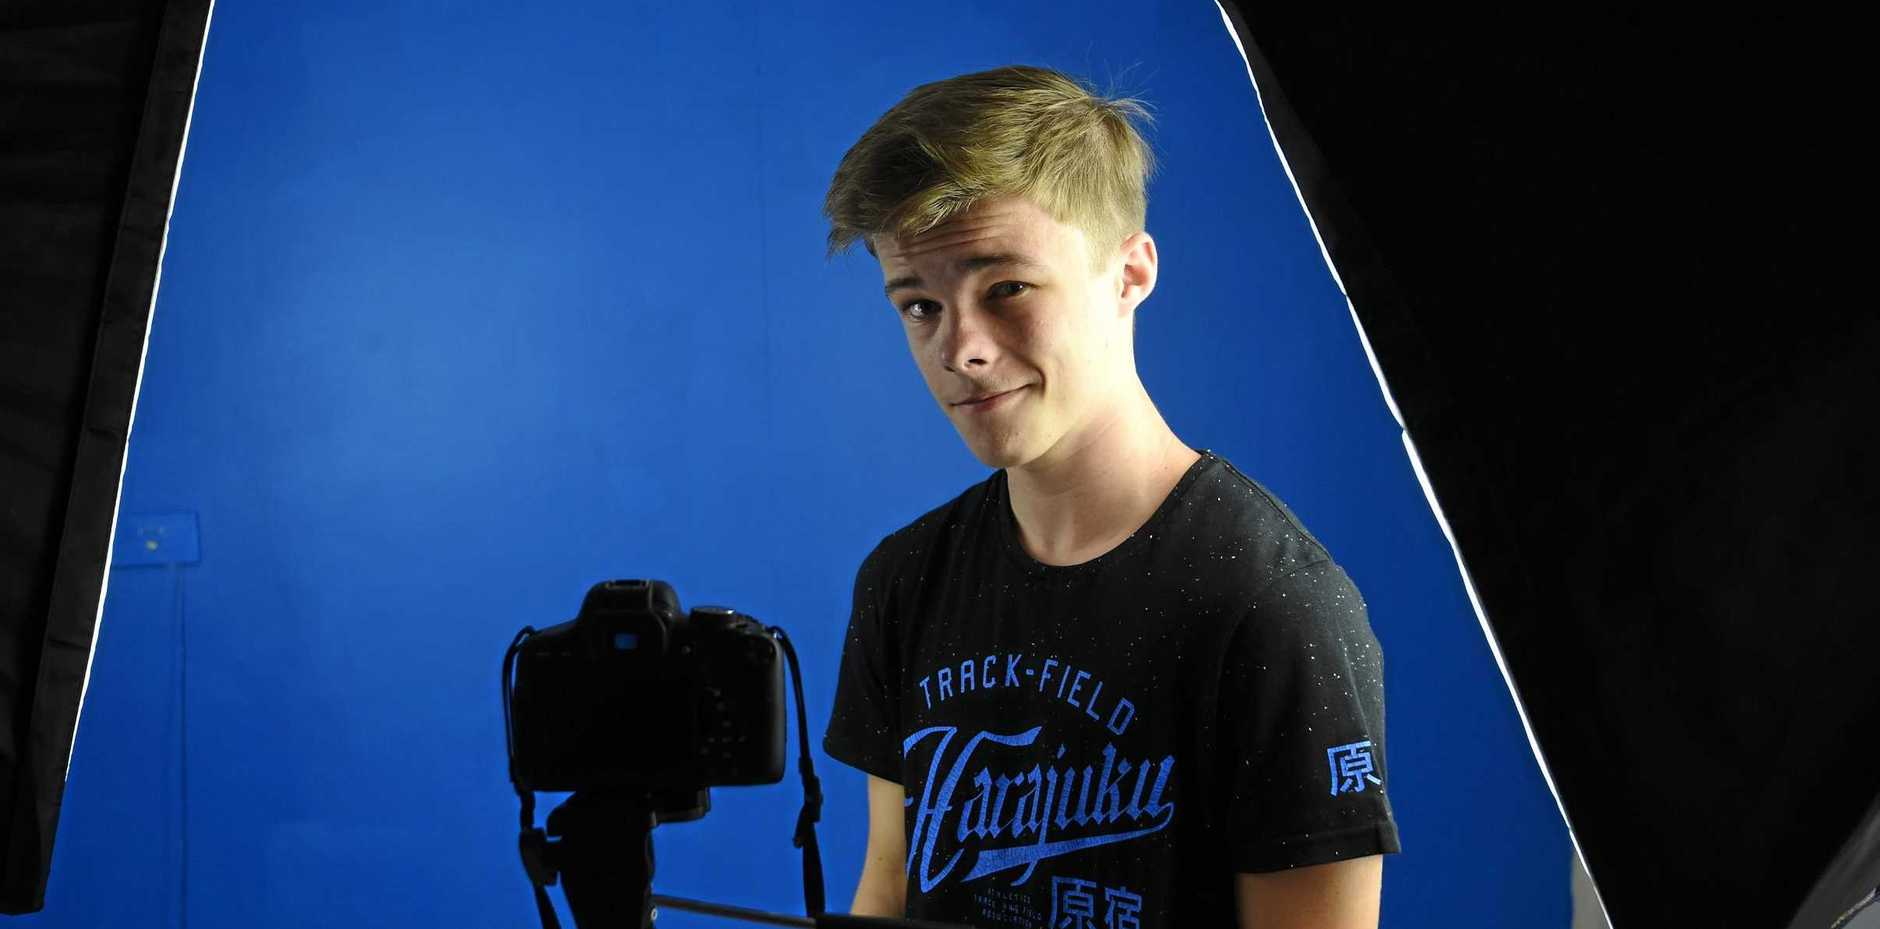 TEEN: Alstonville local Nicholas Hamilton has seen some exciting film projects this year, including the second part top Stephen King's It, opening this week.